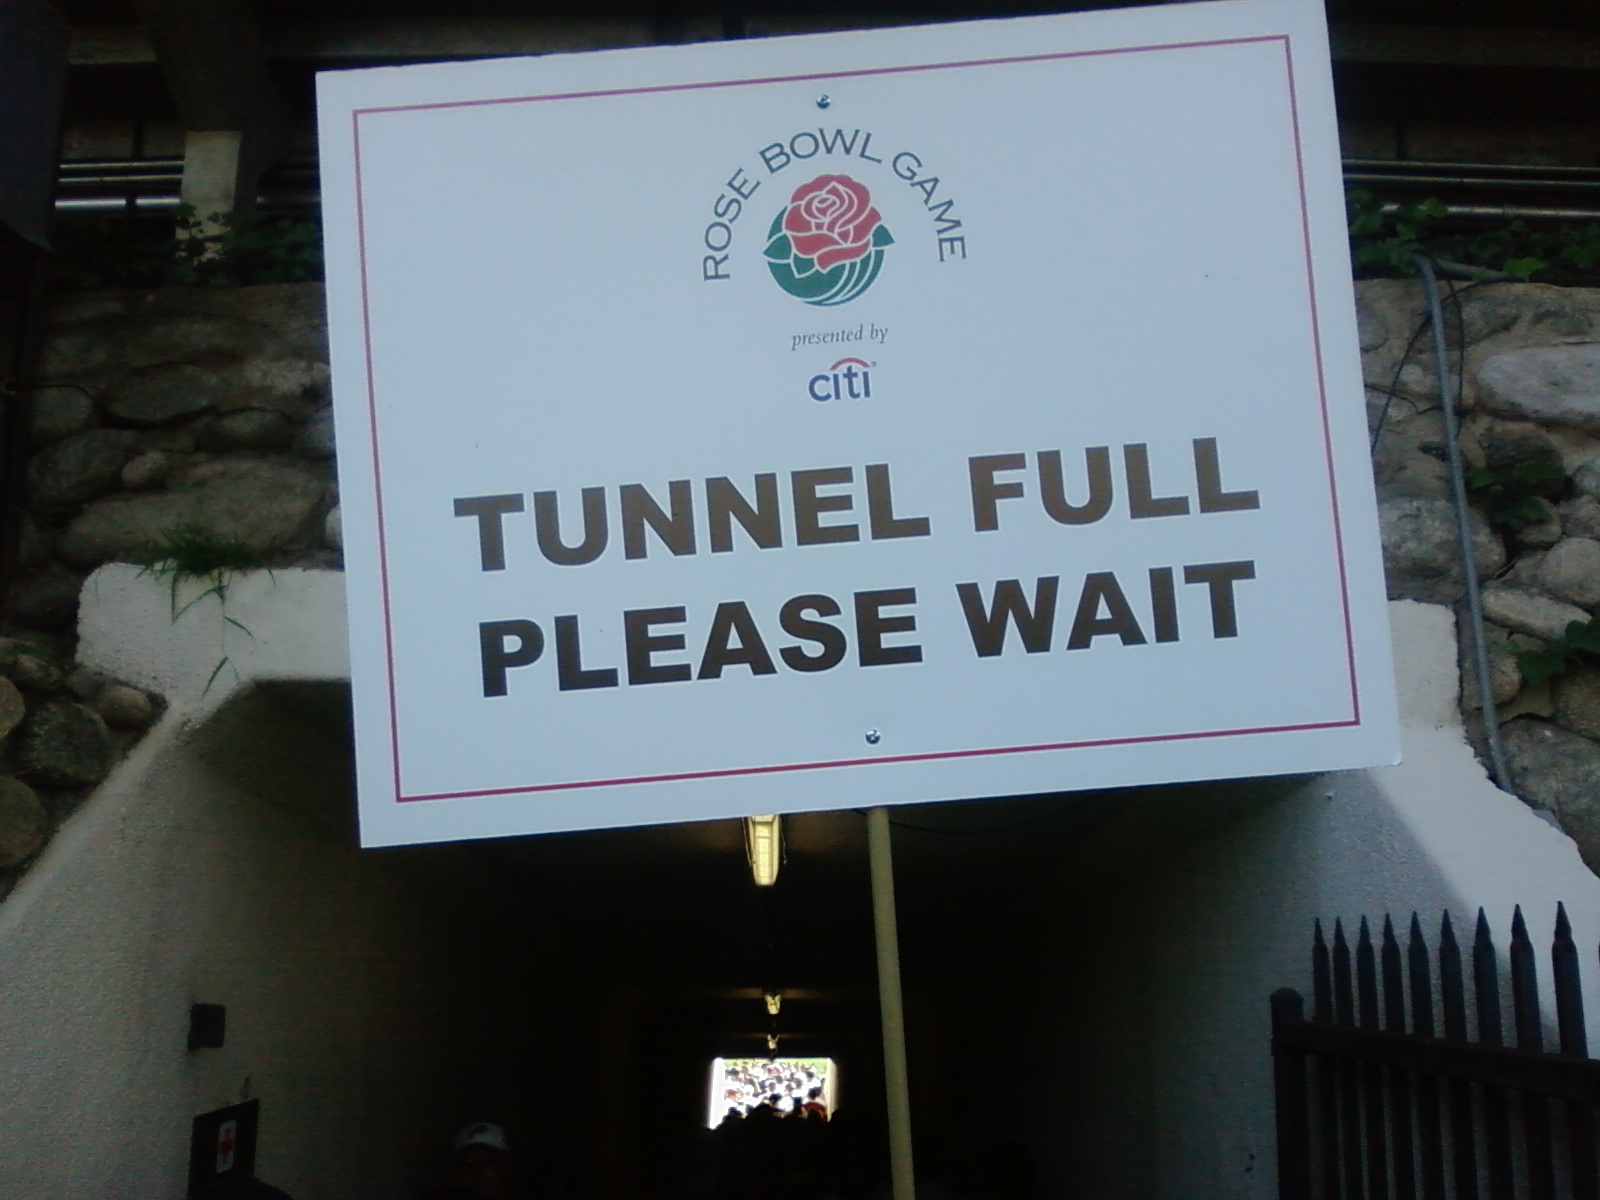 Yes, we booed the tunnel.